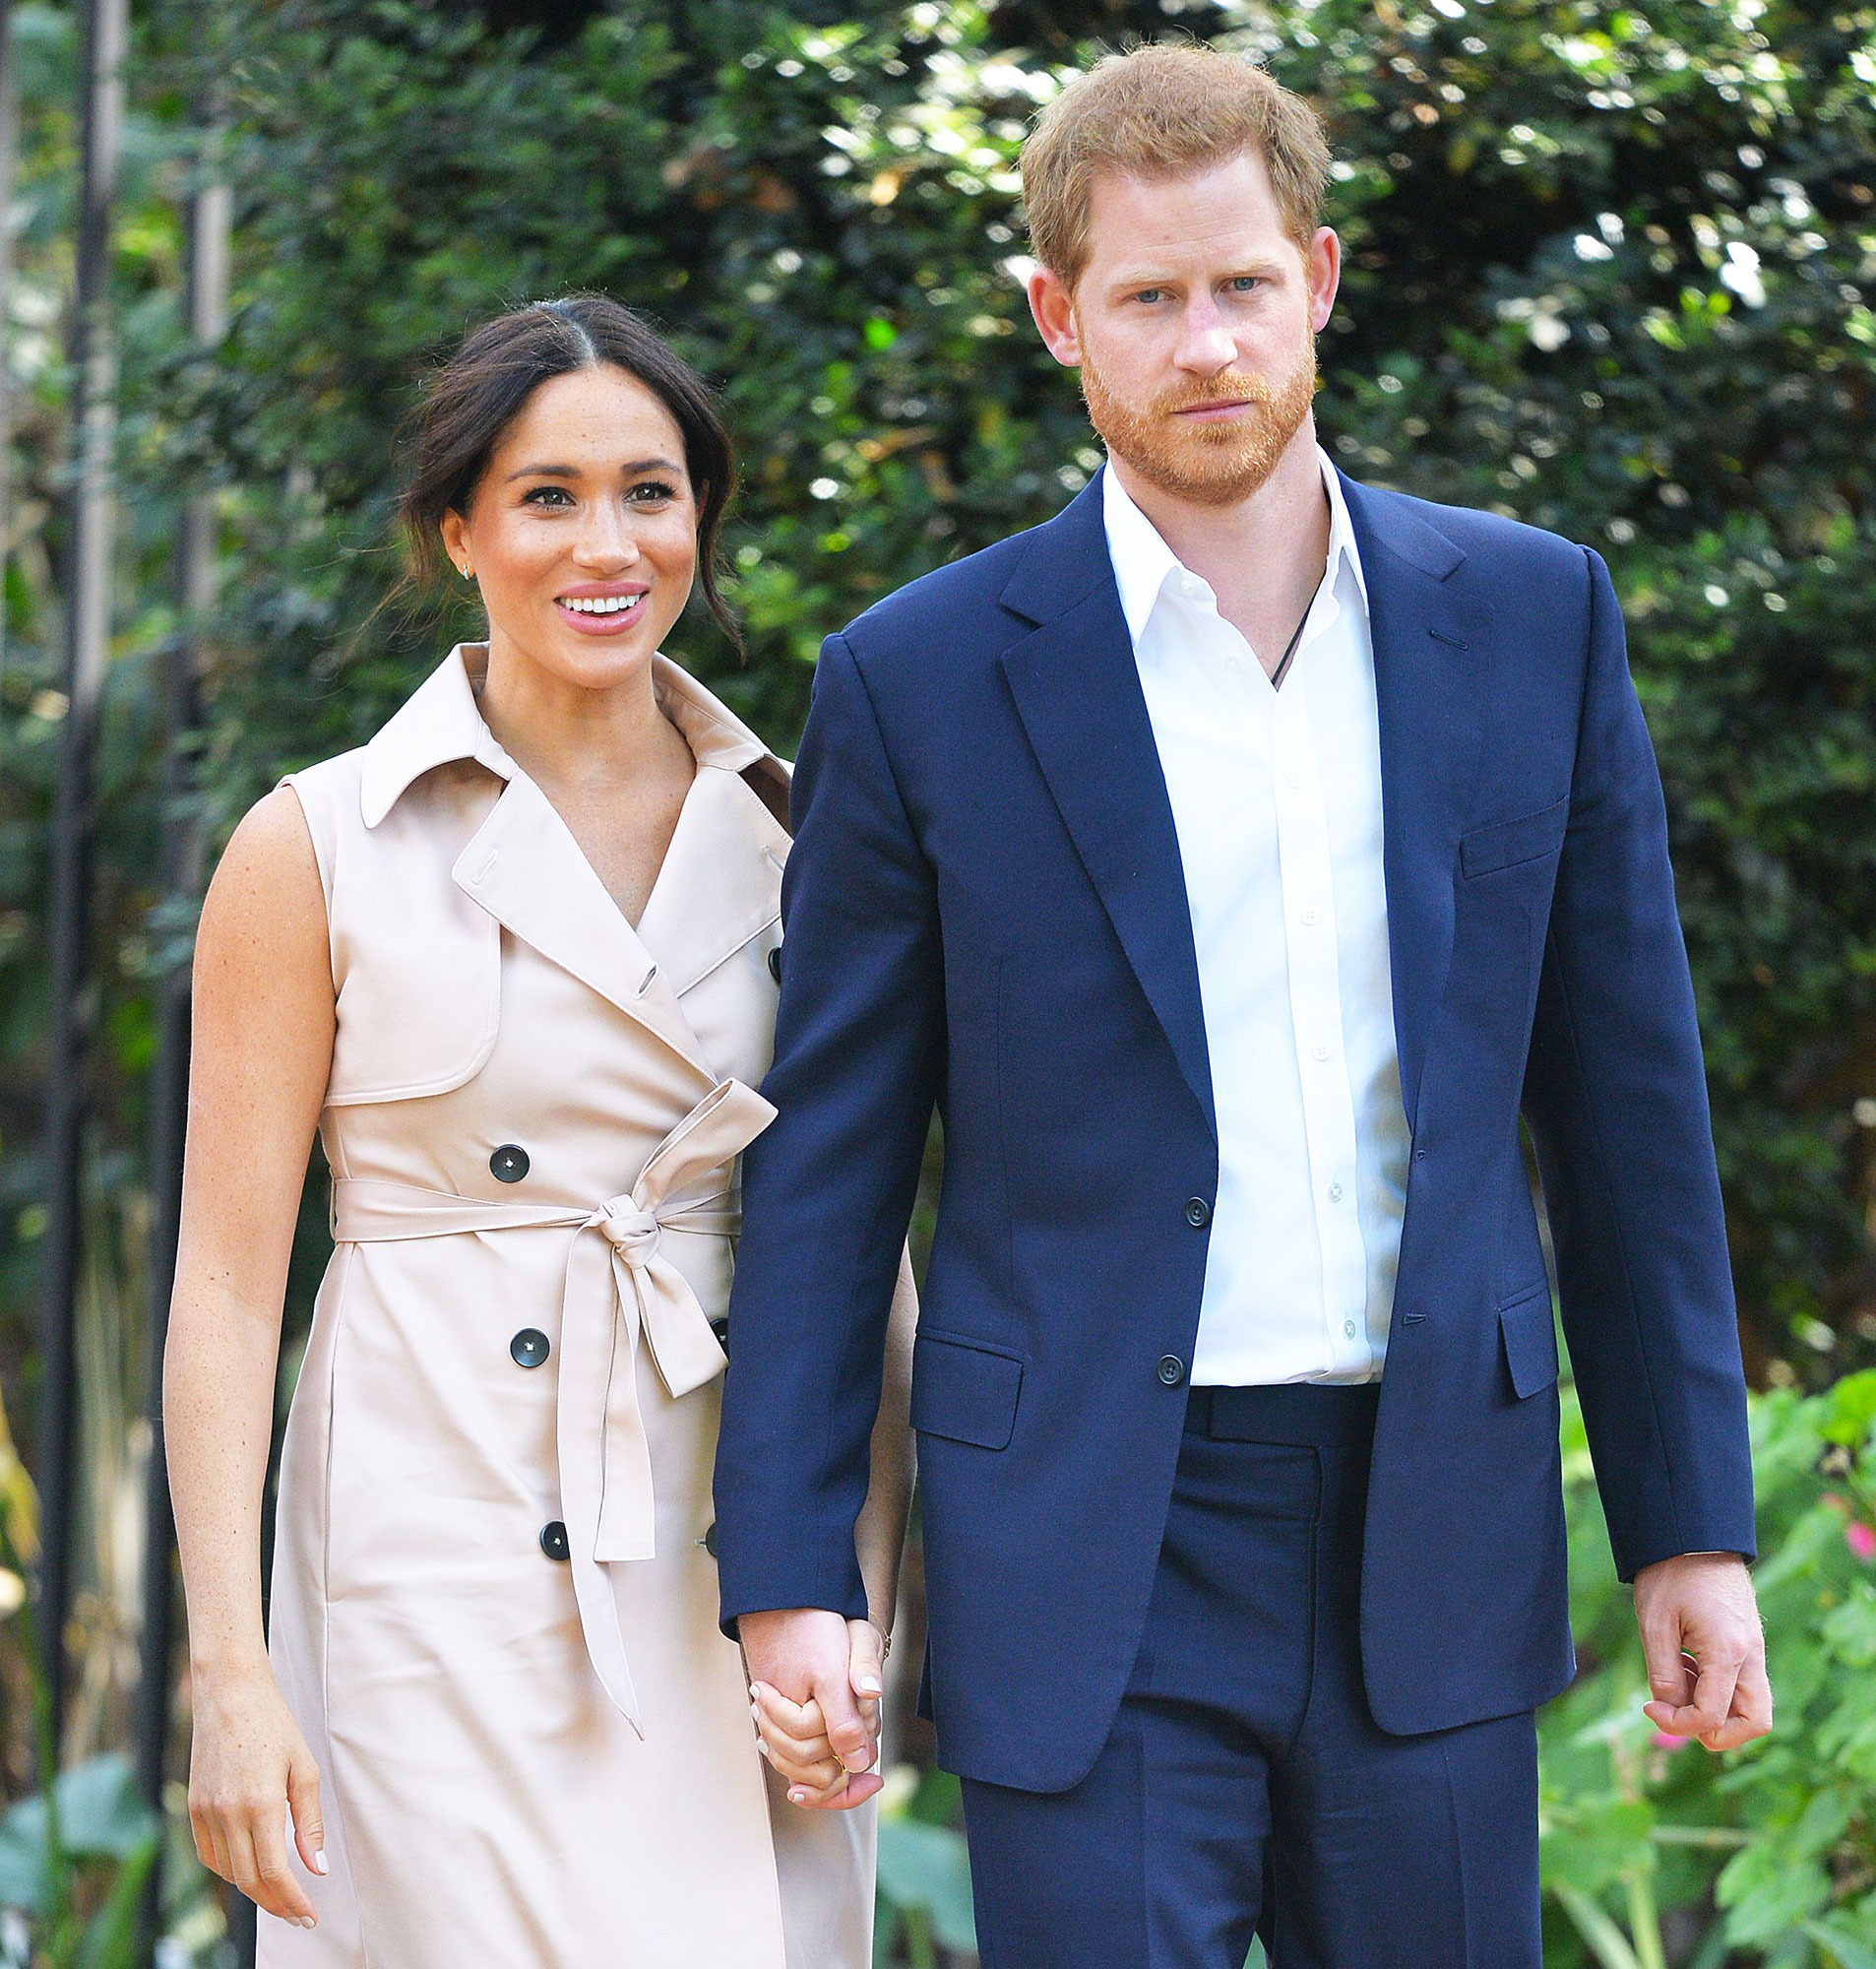 Prince Harry and Meghan Markle Have New Away Message After Royal Exit